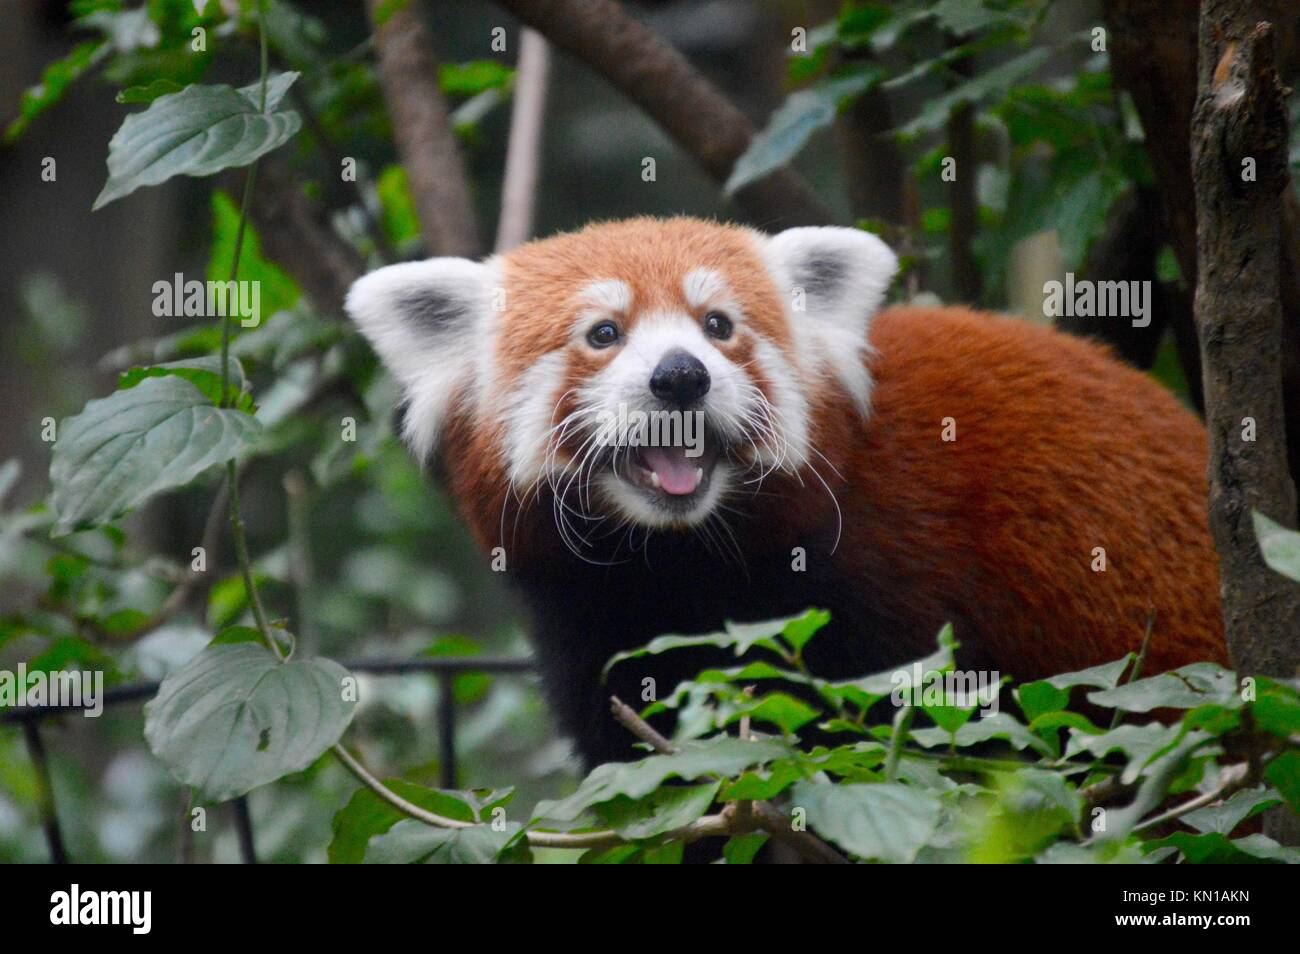 Cheeky Red Panda taken at Central Park Zoo - Stock Image